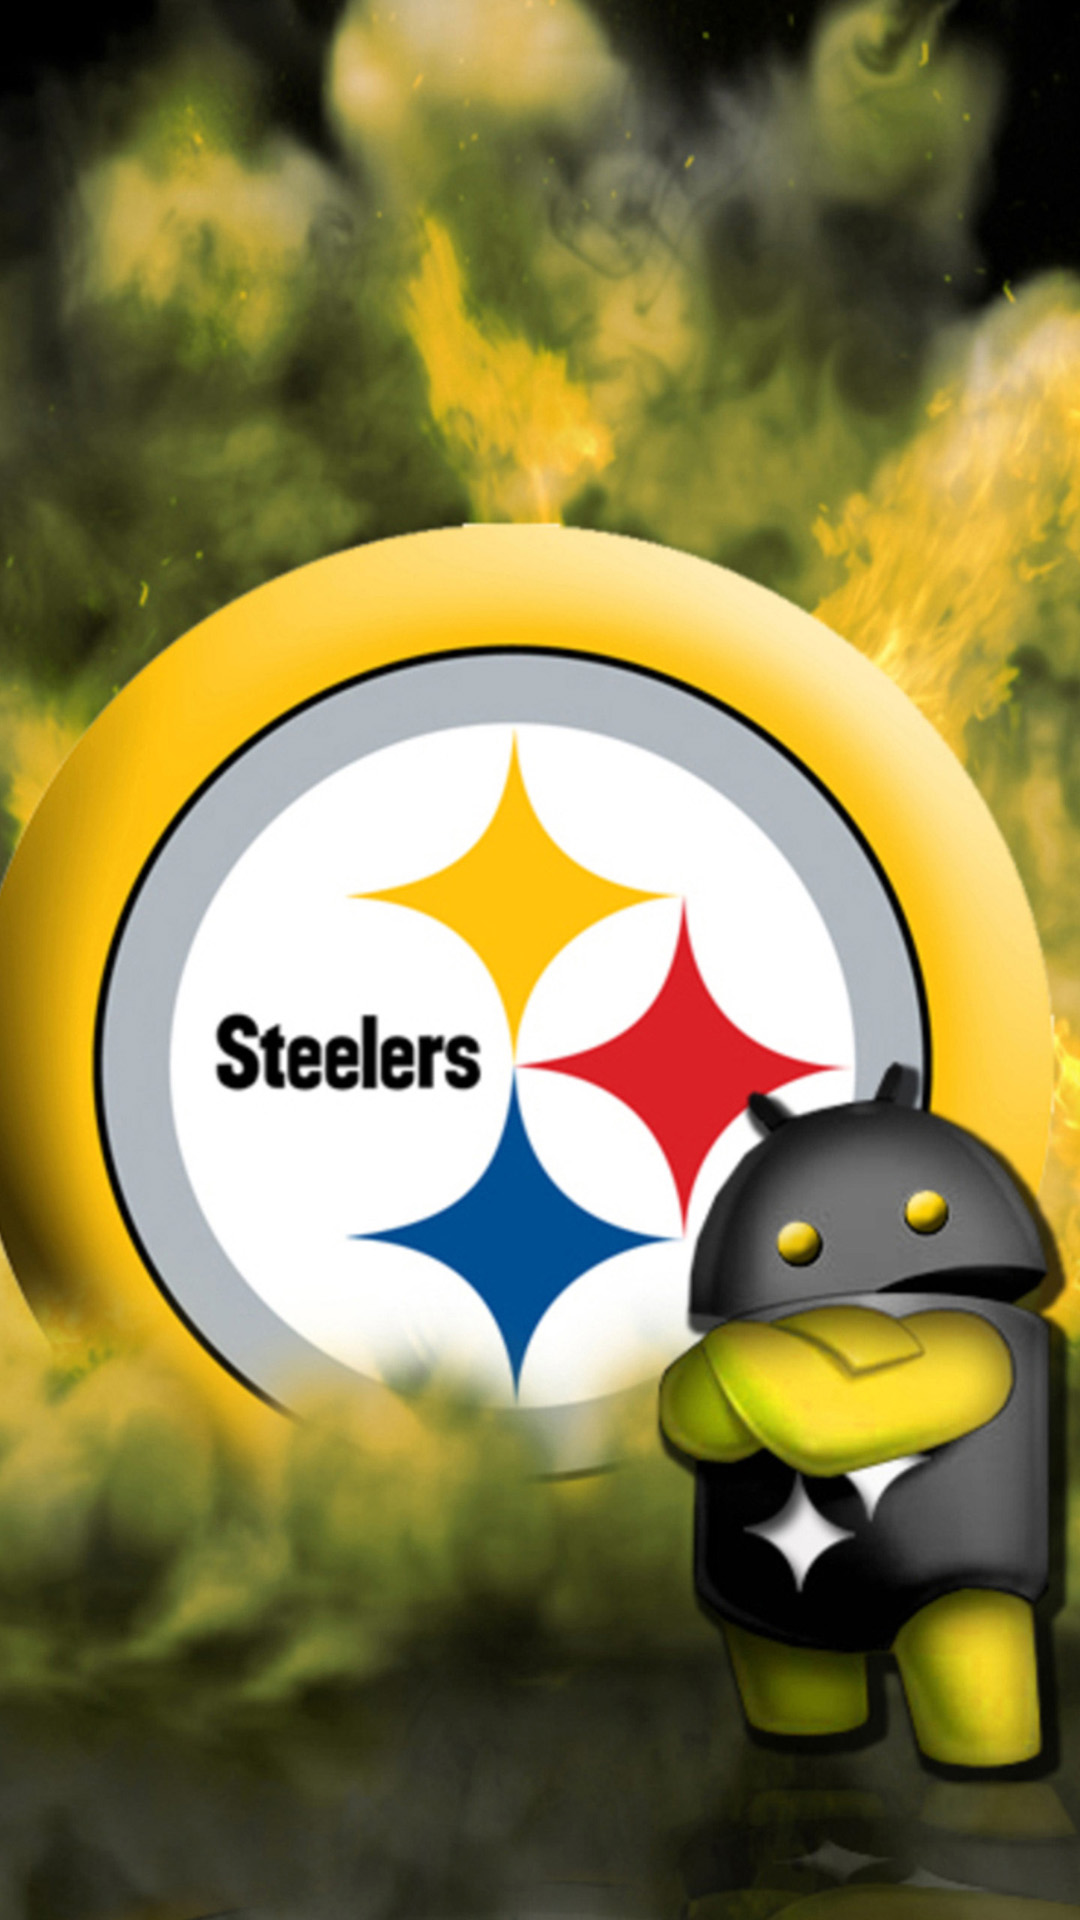 Android-Steelers-Galaxy-S-HD-1080%C3%971920-wallpaper-wp3402365